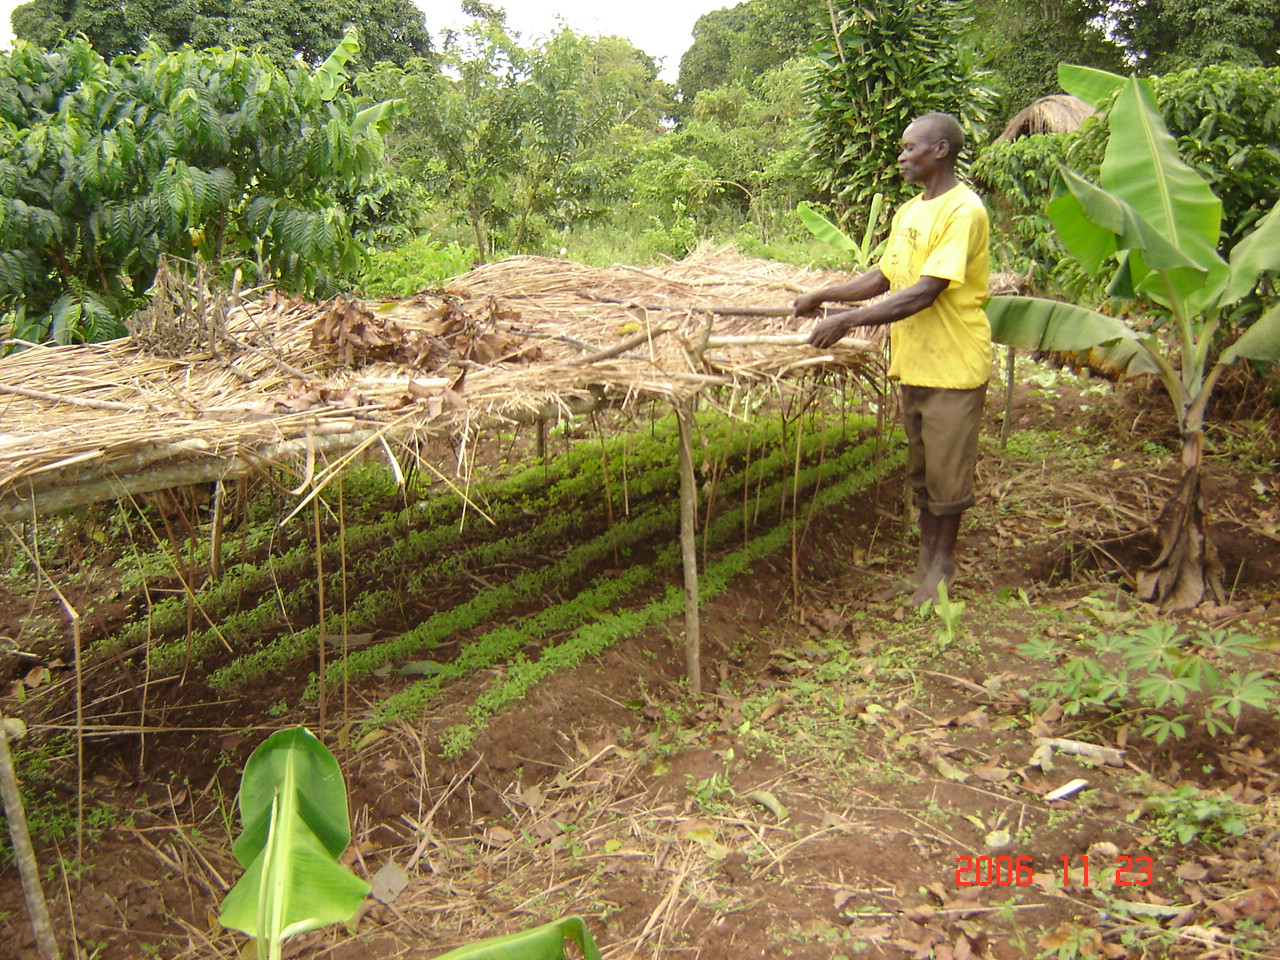 Agro-forestry practices supported by CESA-Uganda for environment conservation in Luweero District.